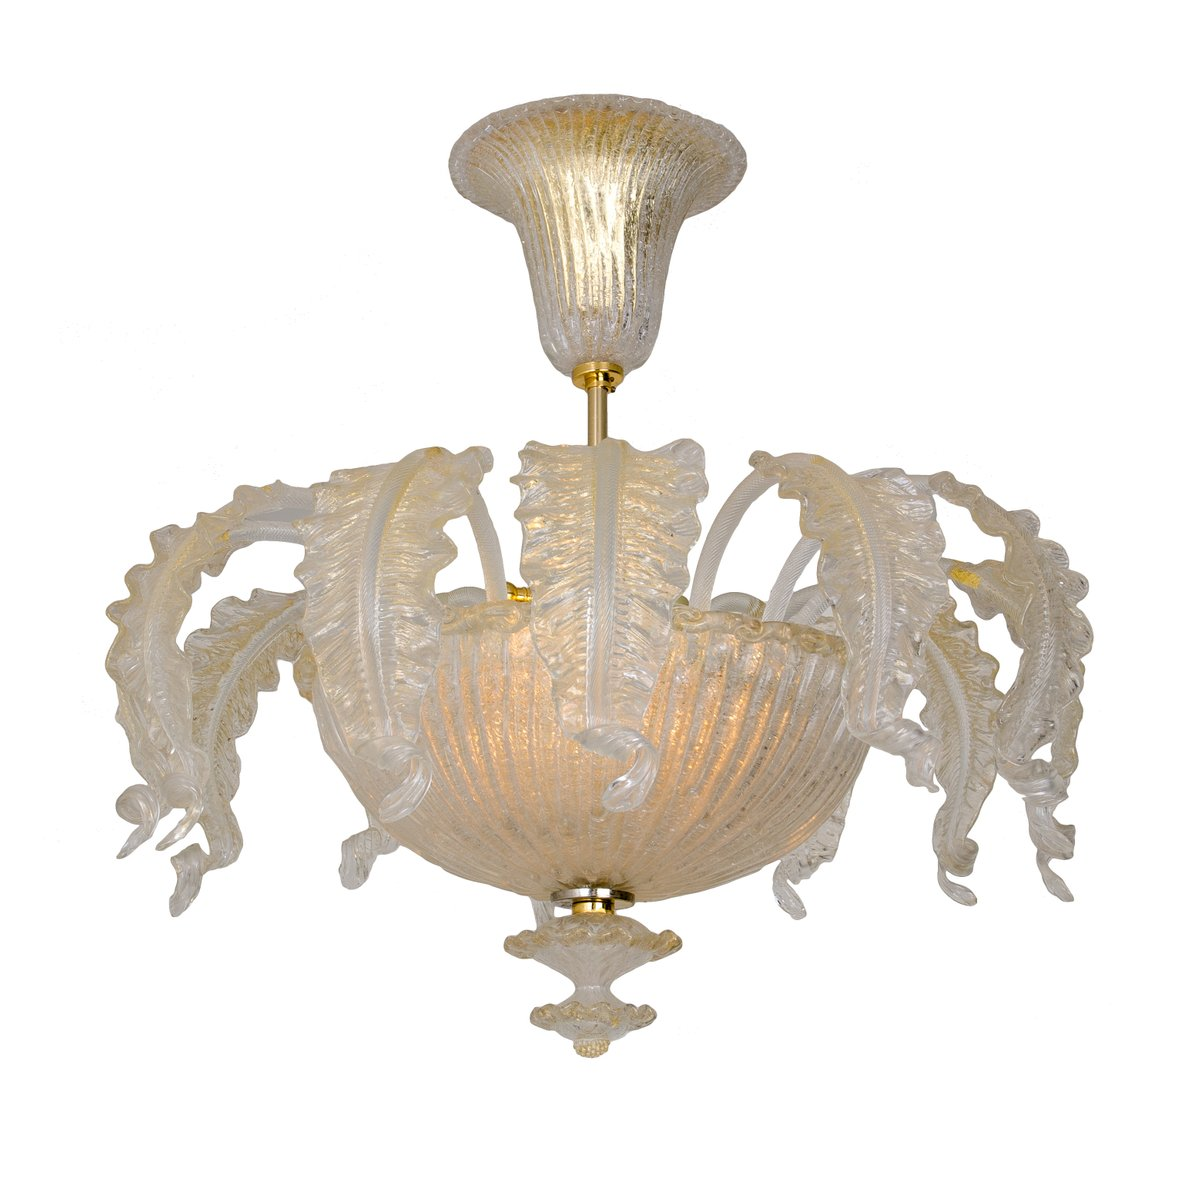 Murano Chandelier Australia: Murano Glass Chandelier From Barovier & Toso, 1955 For